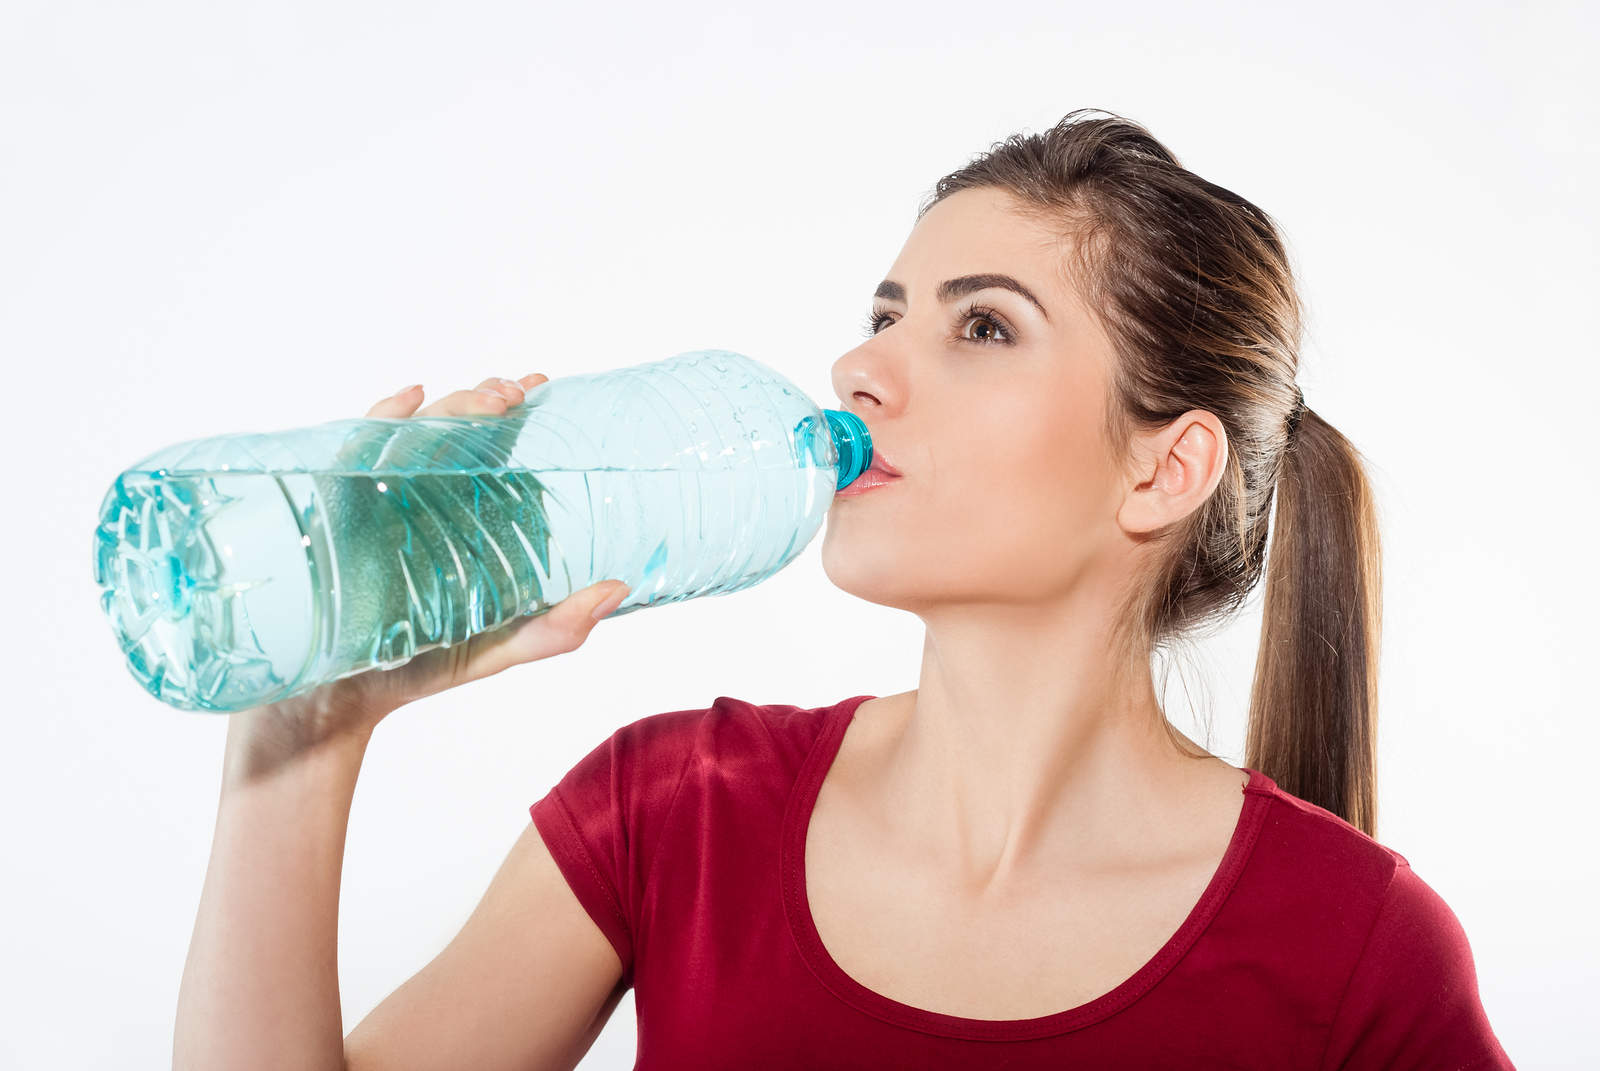 bigstock Woman drinking water from the 82122665